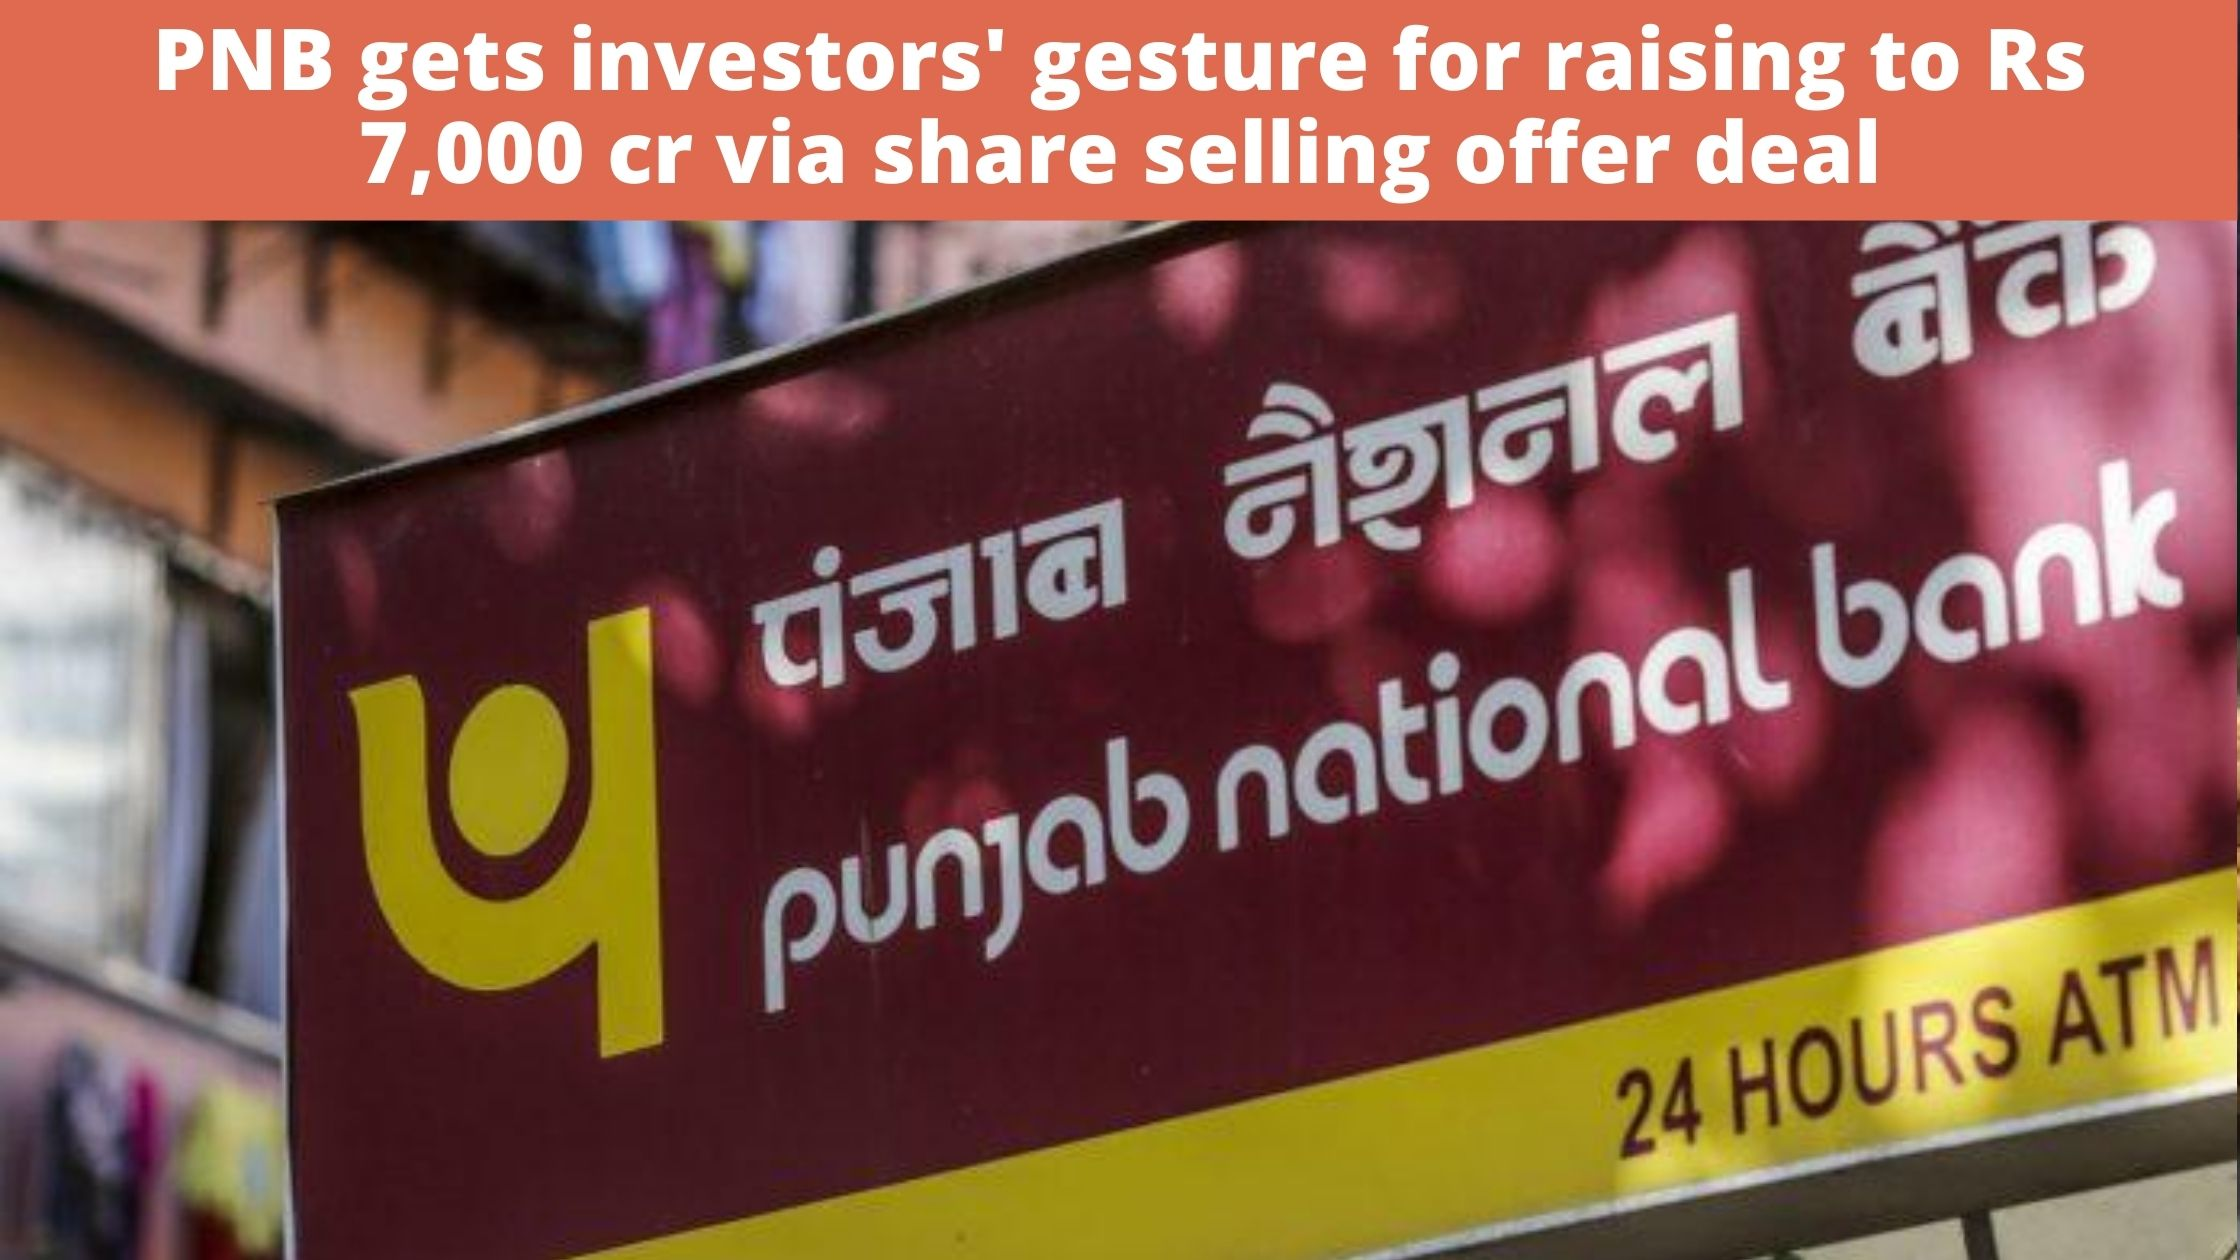 PNB gets investors' gesture for raising to Rs 7,000 cr via share selling offer deal